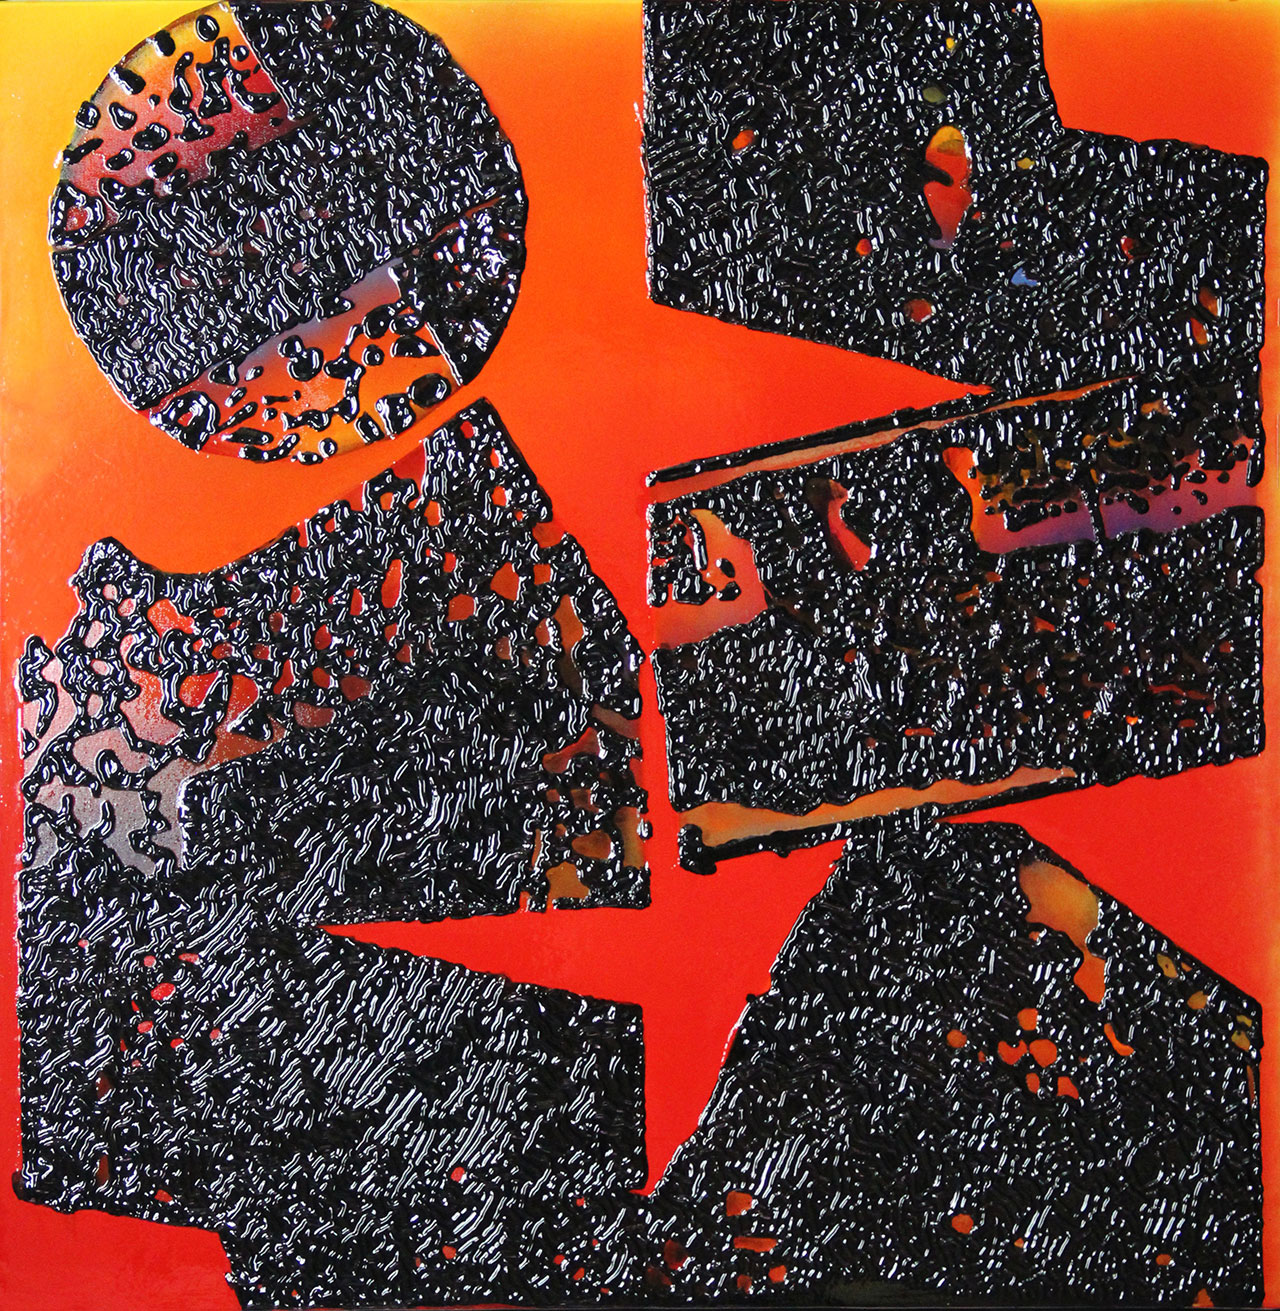 The Elegance of Han Dynasty Oriental19 Lacquer, mixed media 100x100cm